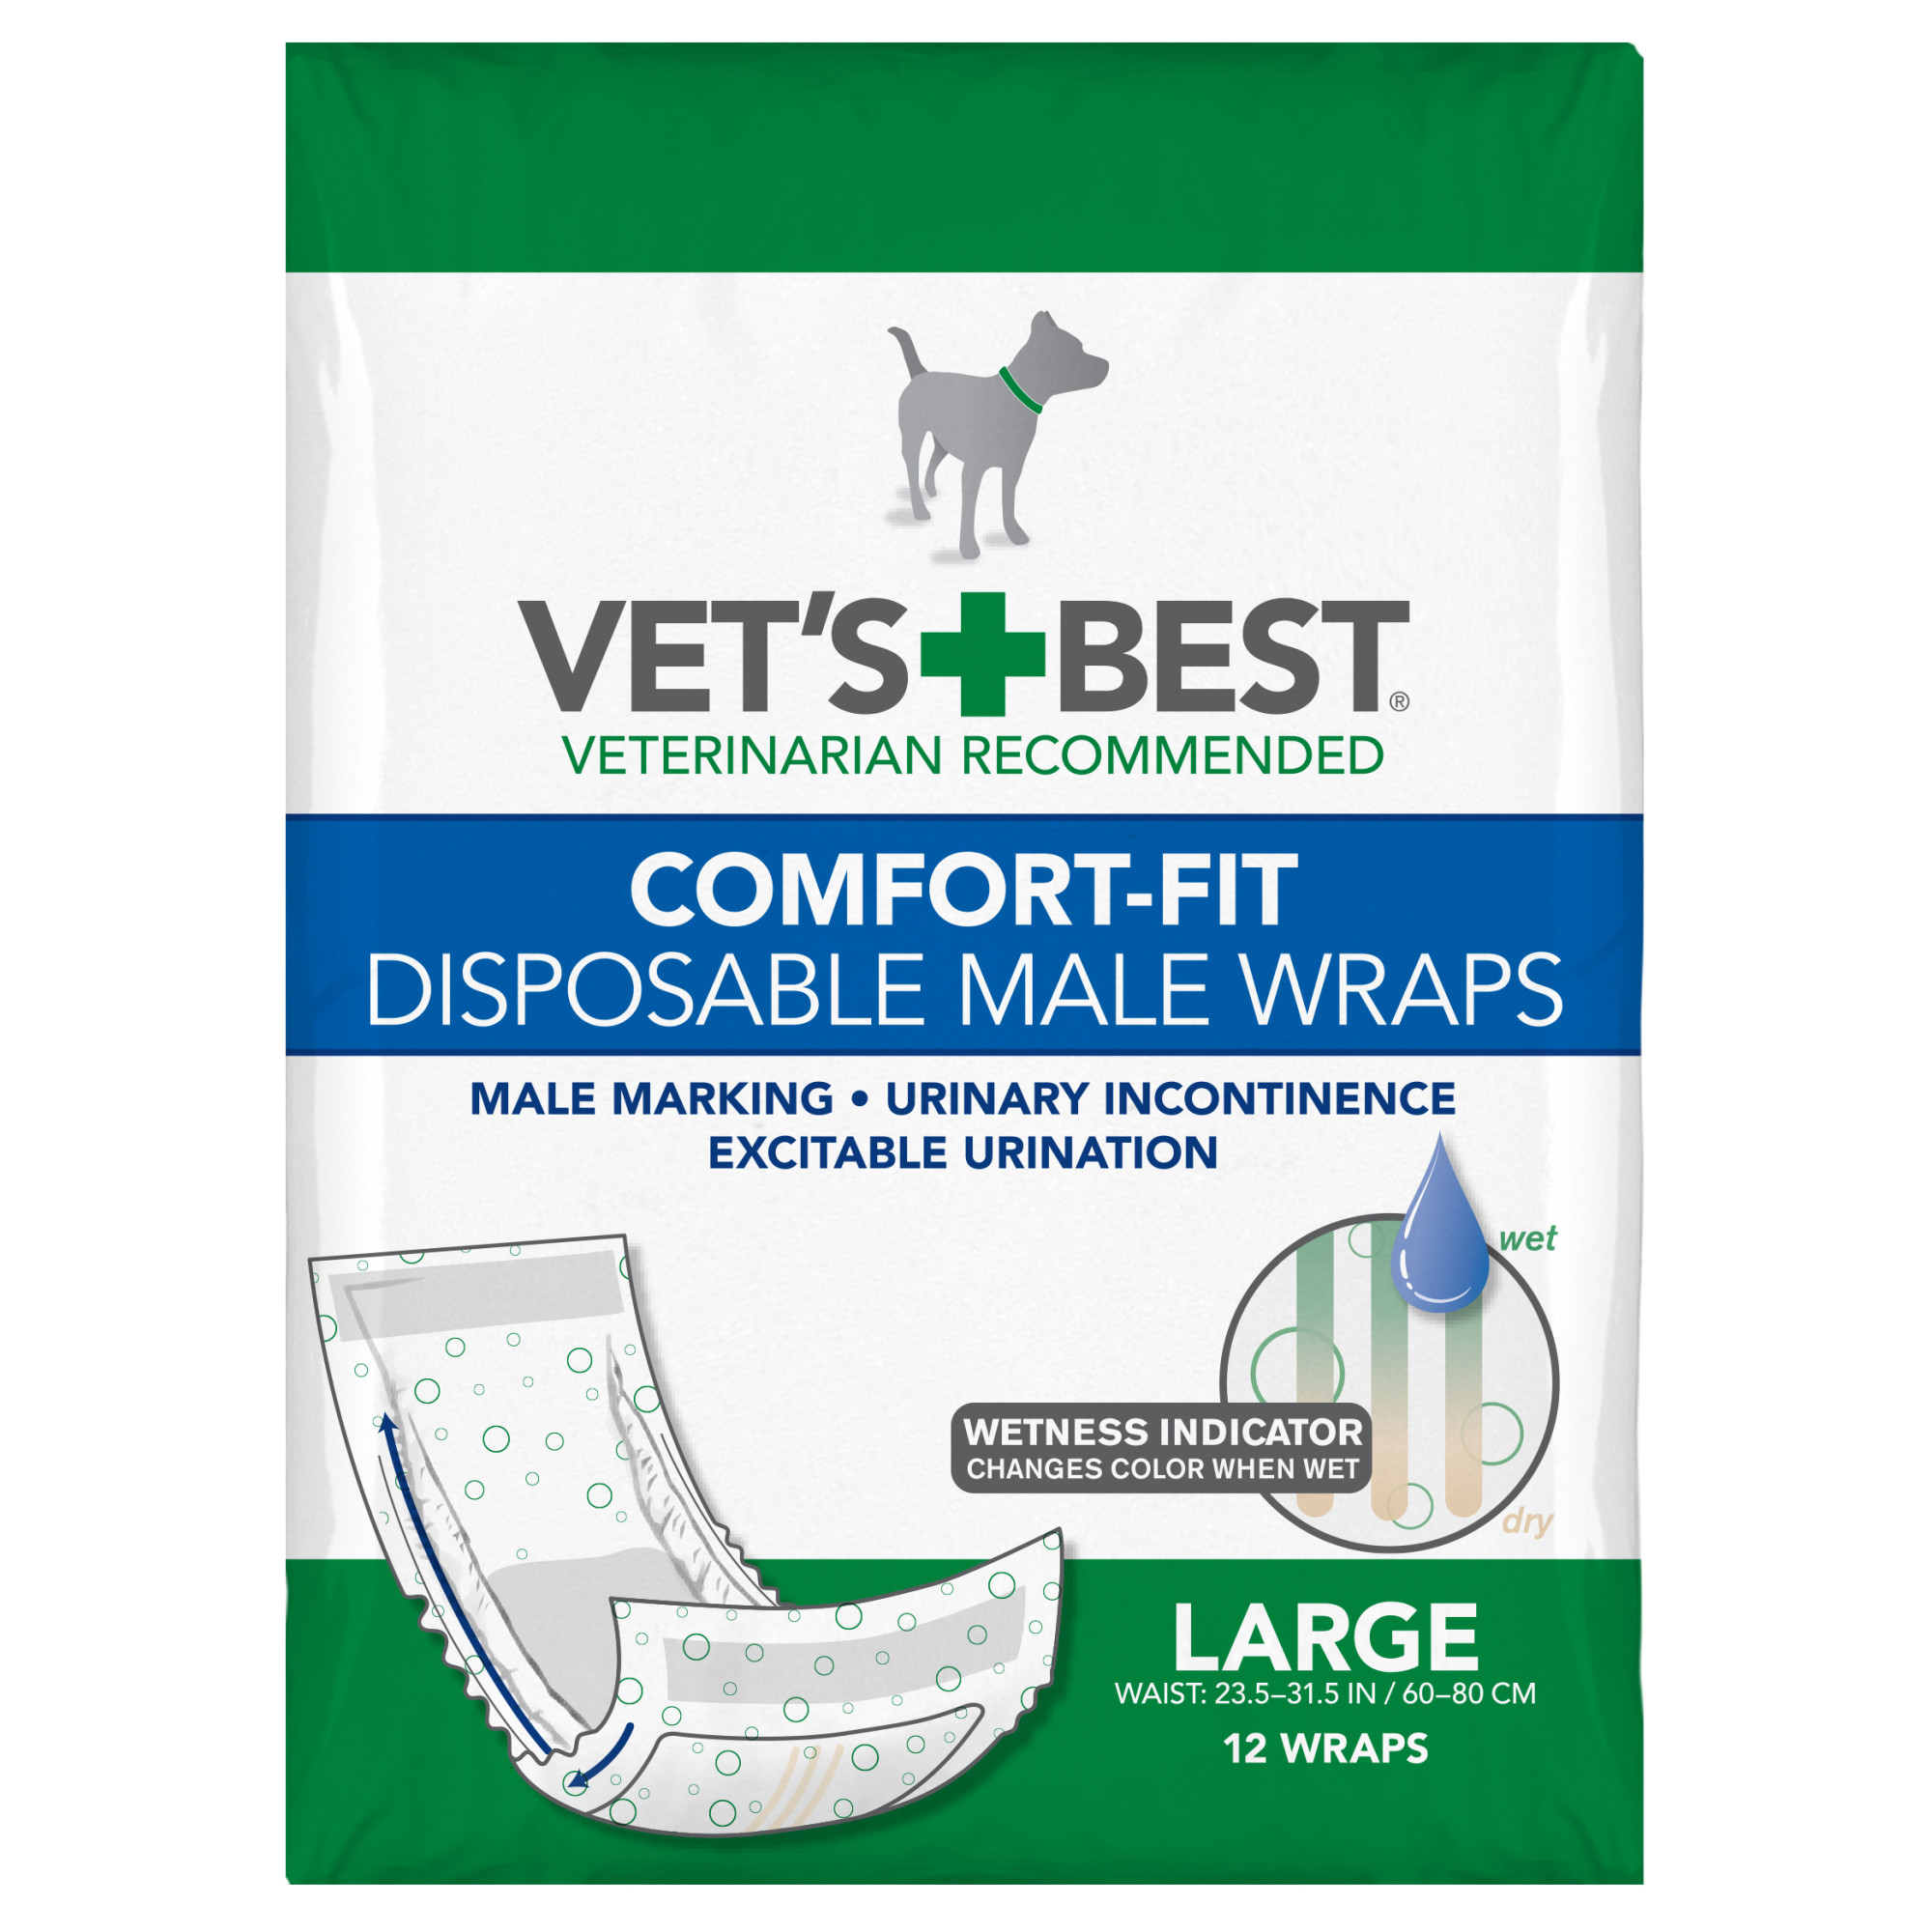 Absorbent Male Wraps with Leak Proof Fit